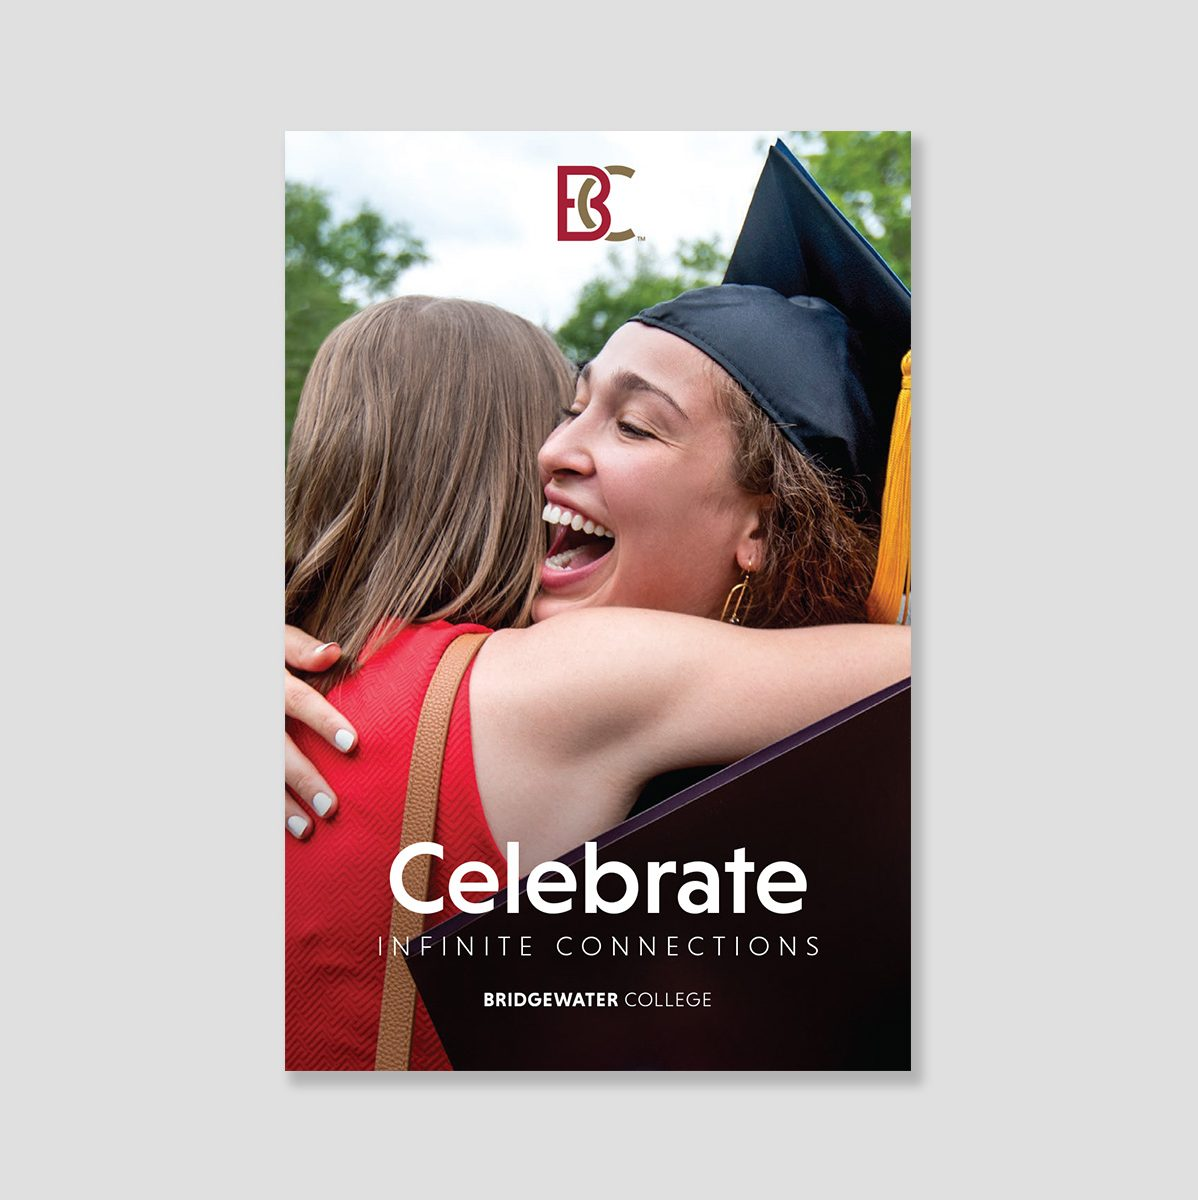 Brochure cover showing two women hugging, one wearing a graduation cap and gown. Text: Celebrate infinite connections.